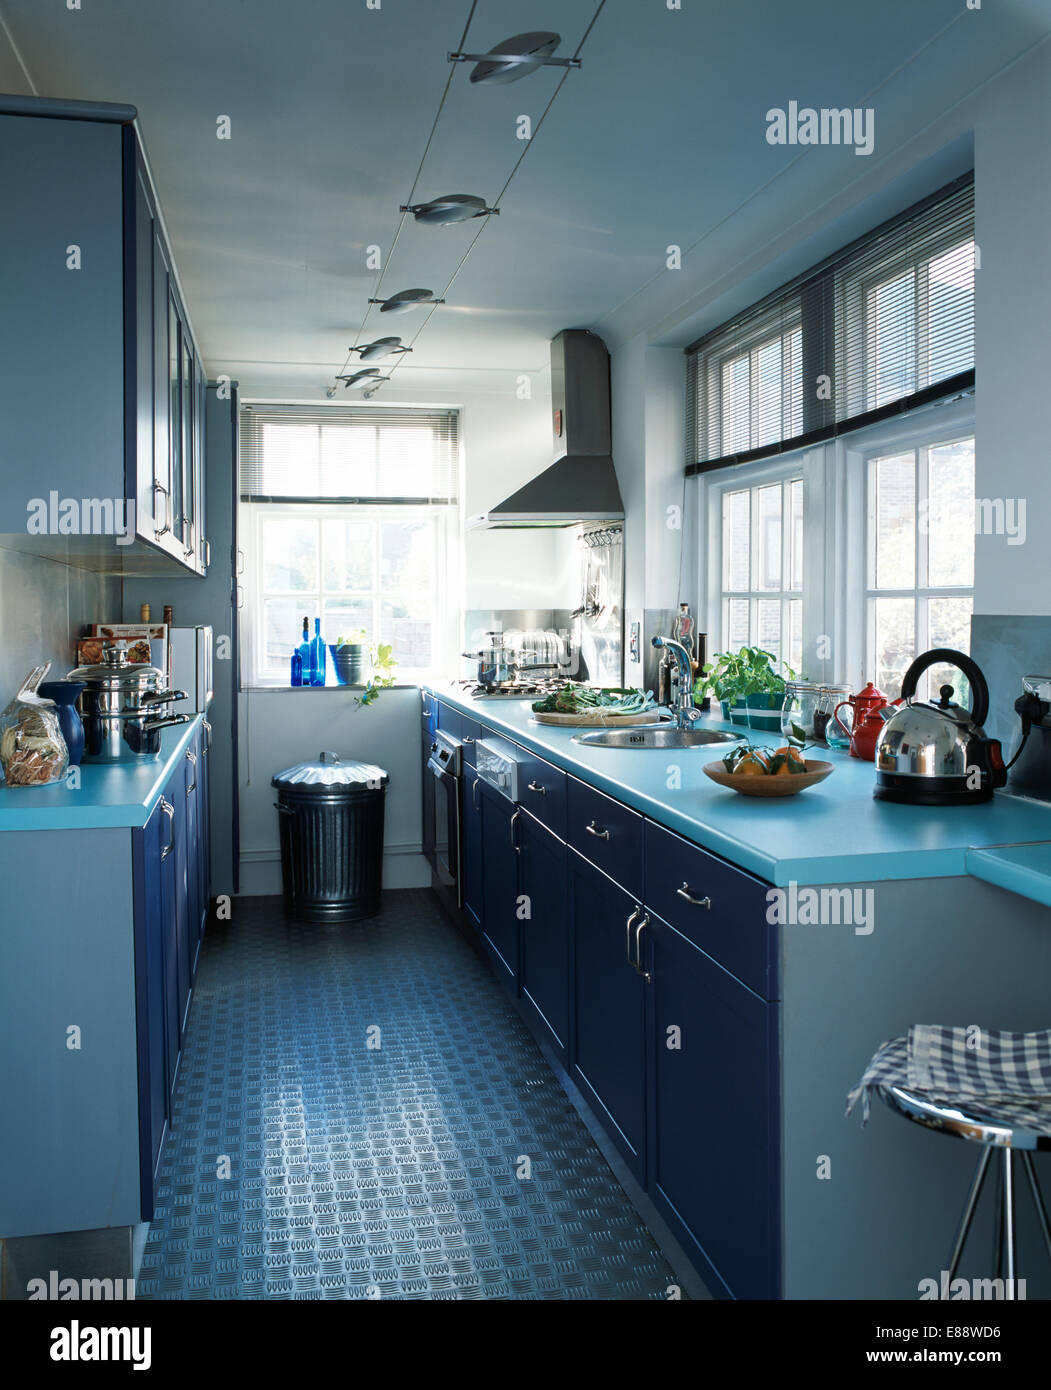 Rubber Flooring In Modern Galley Kitchen With Pale Blue Worktops And  Stainless Steel Waste Bin